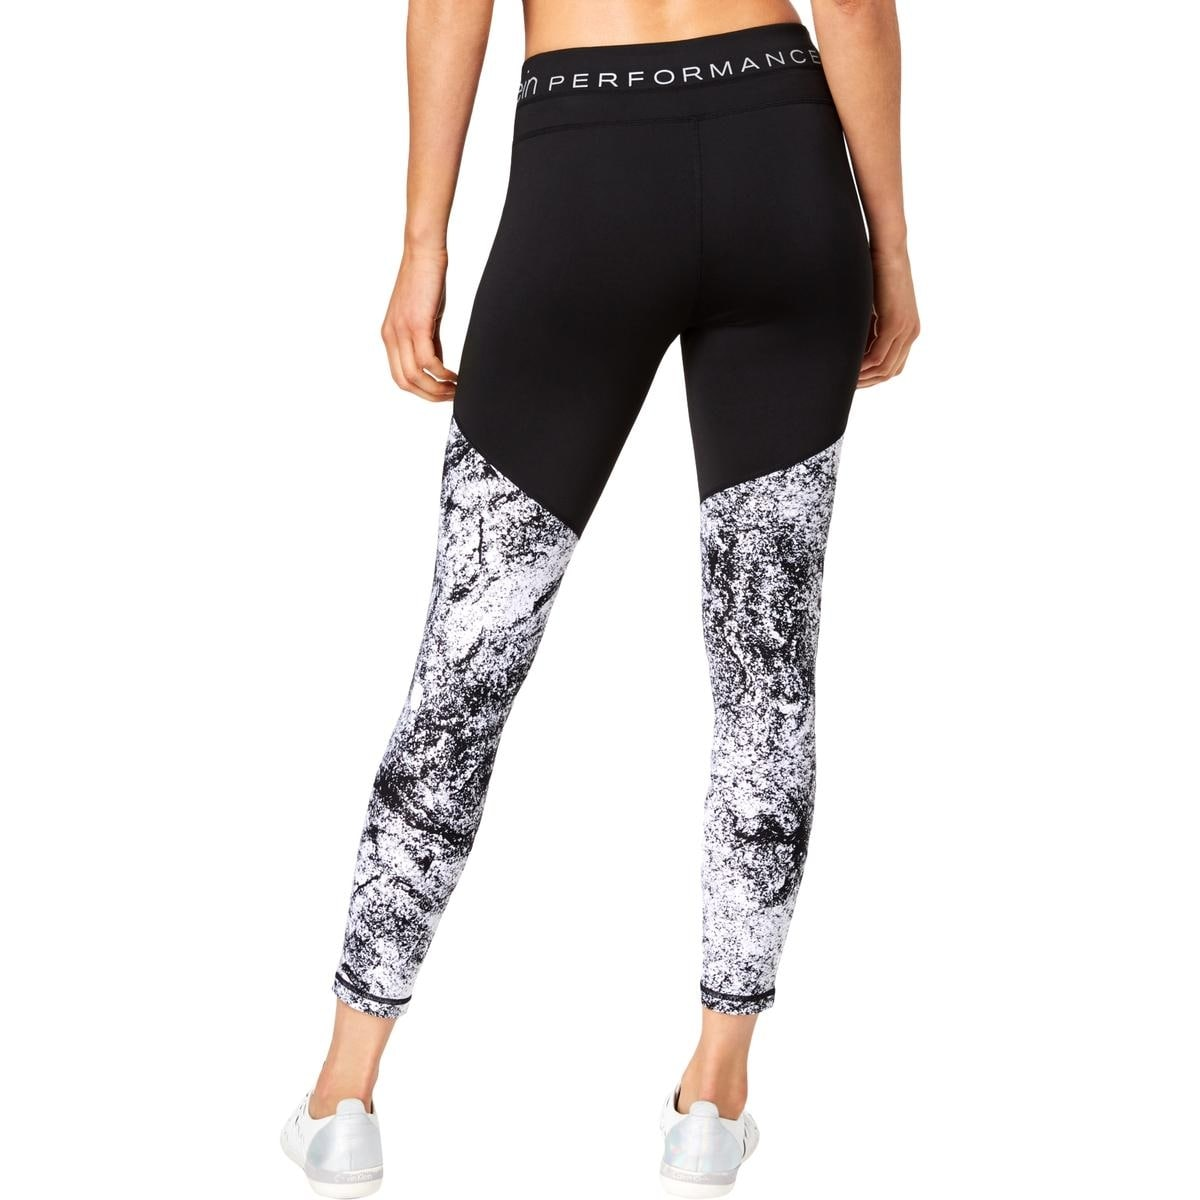 73d49f97033c4 Shop Calvin Klein Performance Womens Athletic Leggings Yoga Fitness - Free  Shipping On Orders Over $45 - Overstock - 27431538